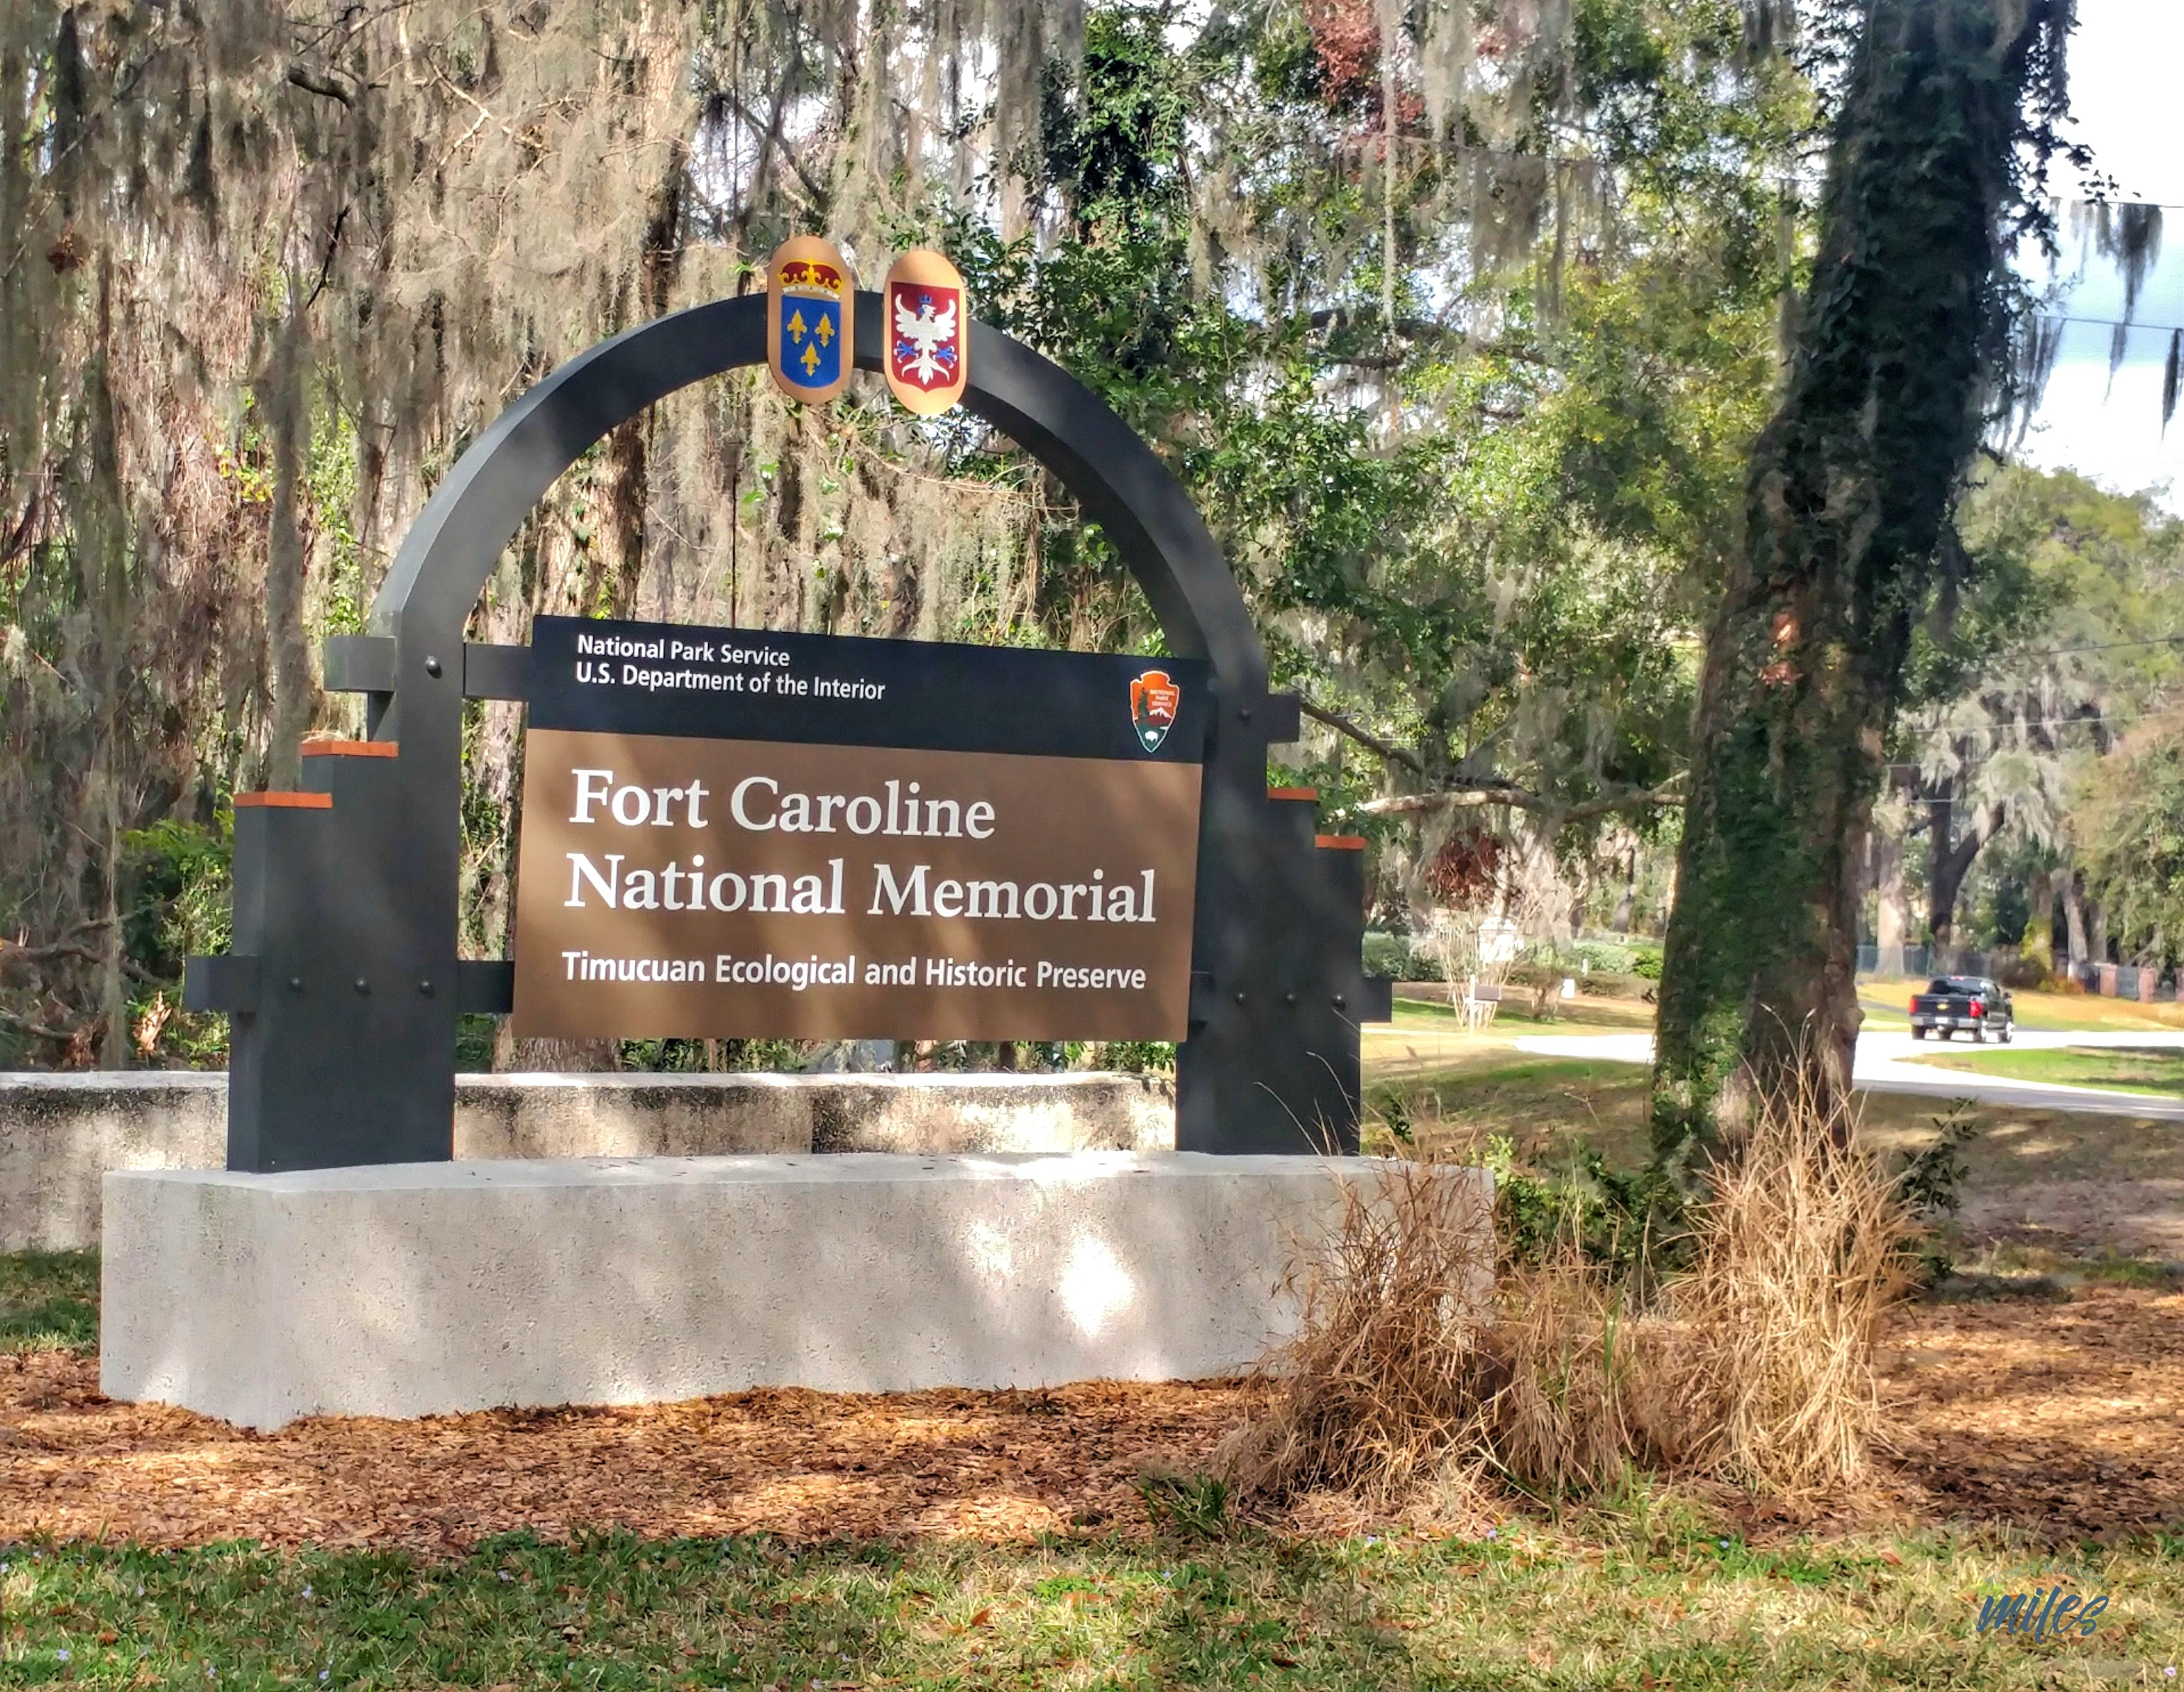 Fort Caroline National Memorial is part of the Timucuan Ecological and Historical Preserve in Jacksonville, FL.